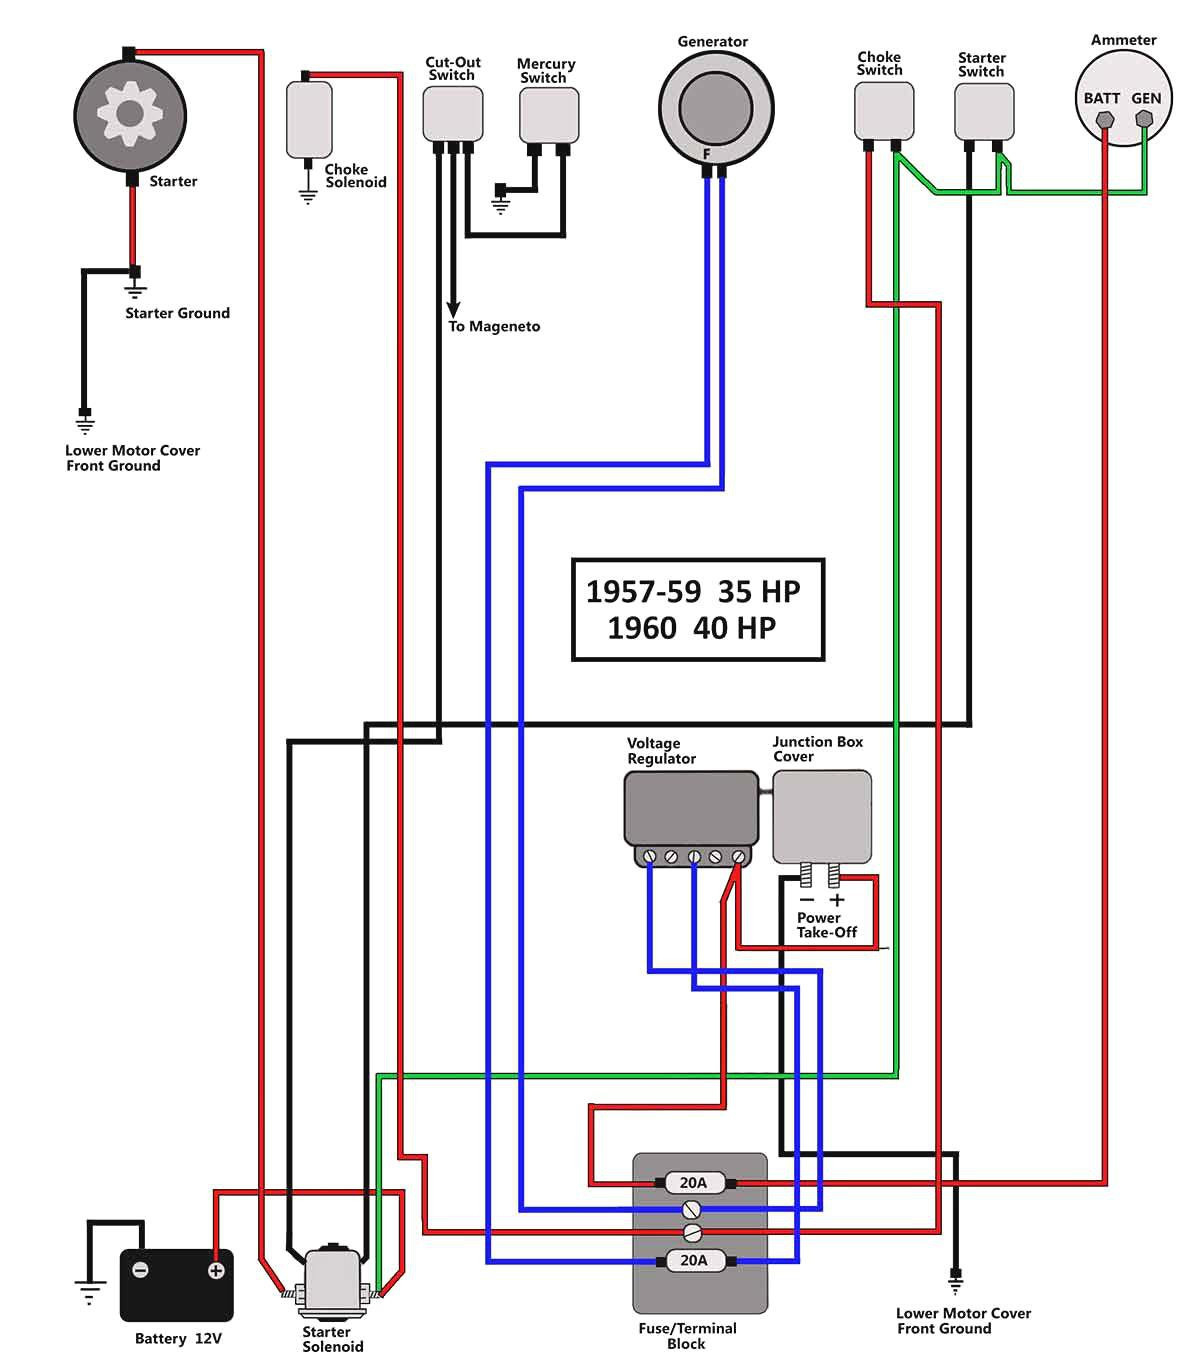 wiring diagram for mercury ignition switch wiring diagram for mercury 40 hp 50 hp mercury outboard wiring diagram collection #11